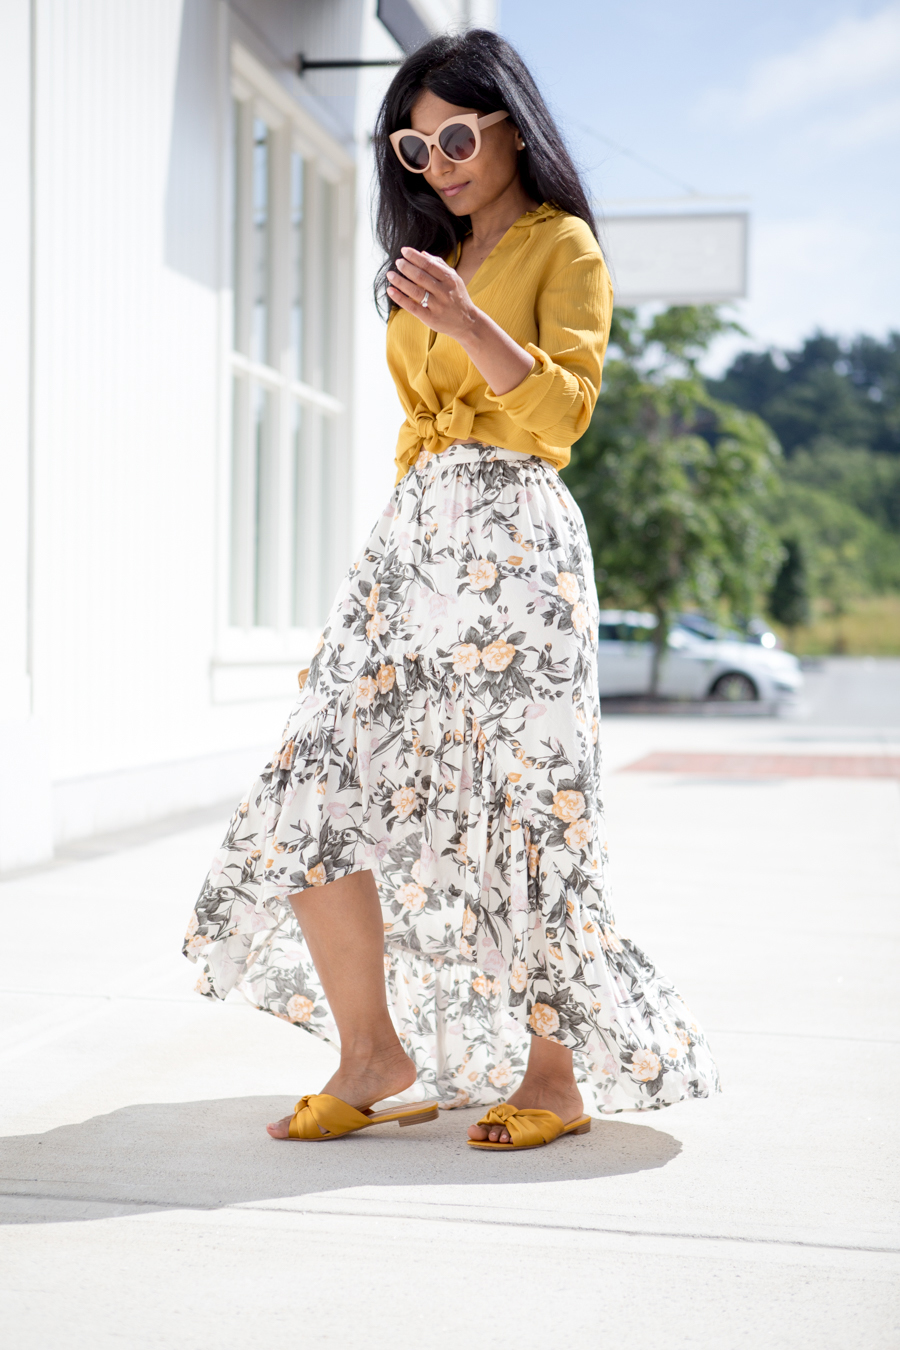 ruffles, tiered, maxi skirt, petite fashion, petite style, petite-friendly, petite maxi skirt, satin sliders, satin sandals, yellow, gold, affordable style, trendy, feminine style, colorful style, style tips, forever 21, sliders, summer chic